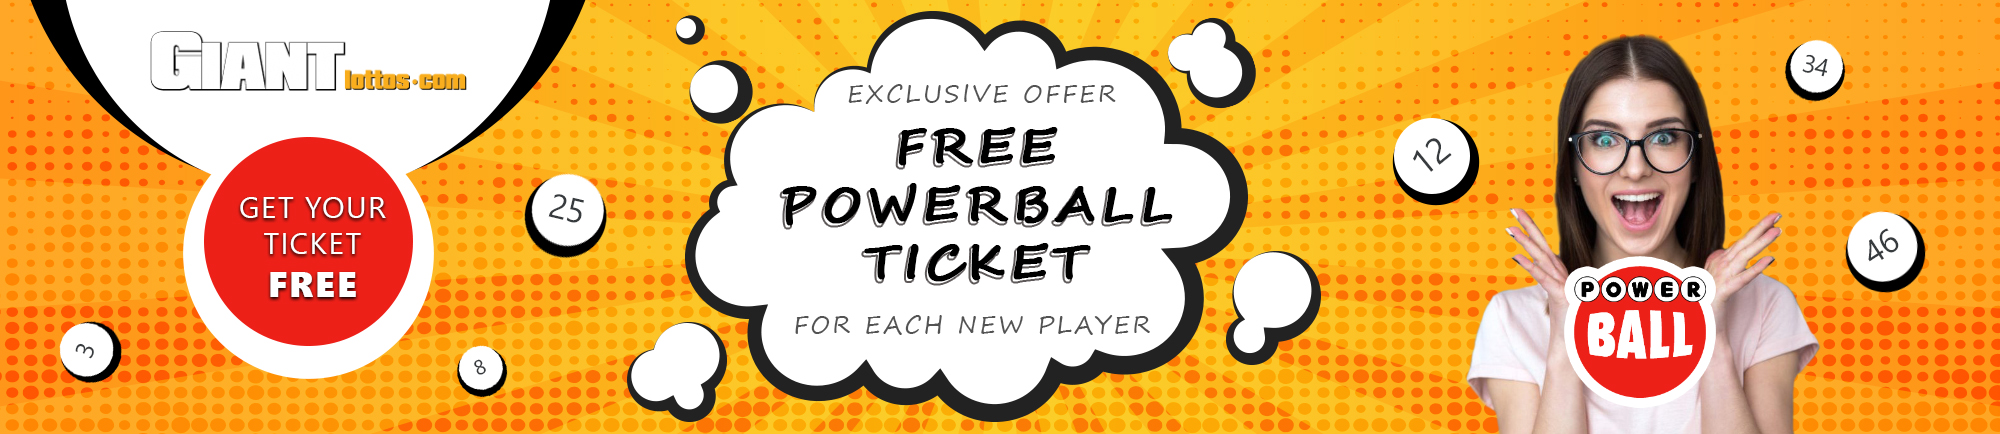 Free Powerball ticket from GiantLottos